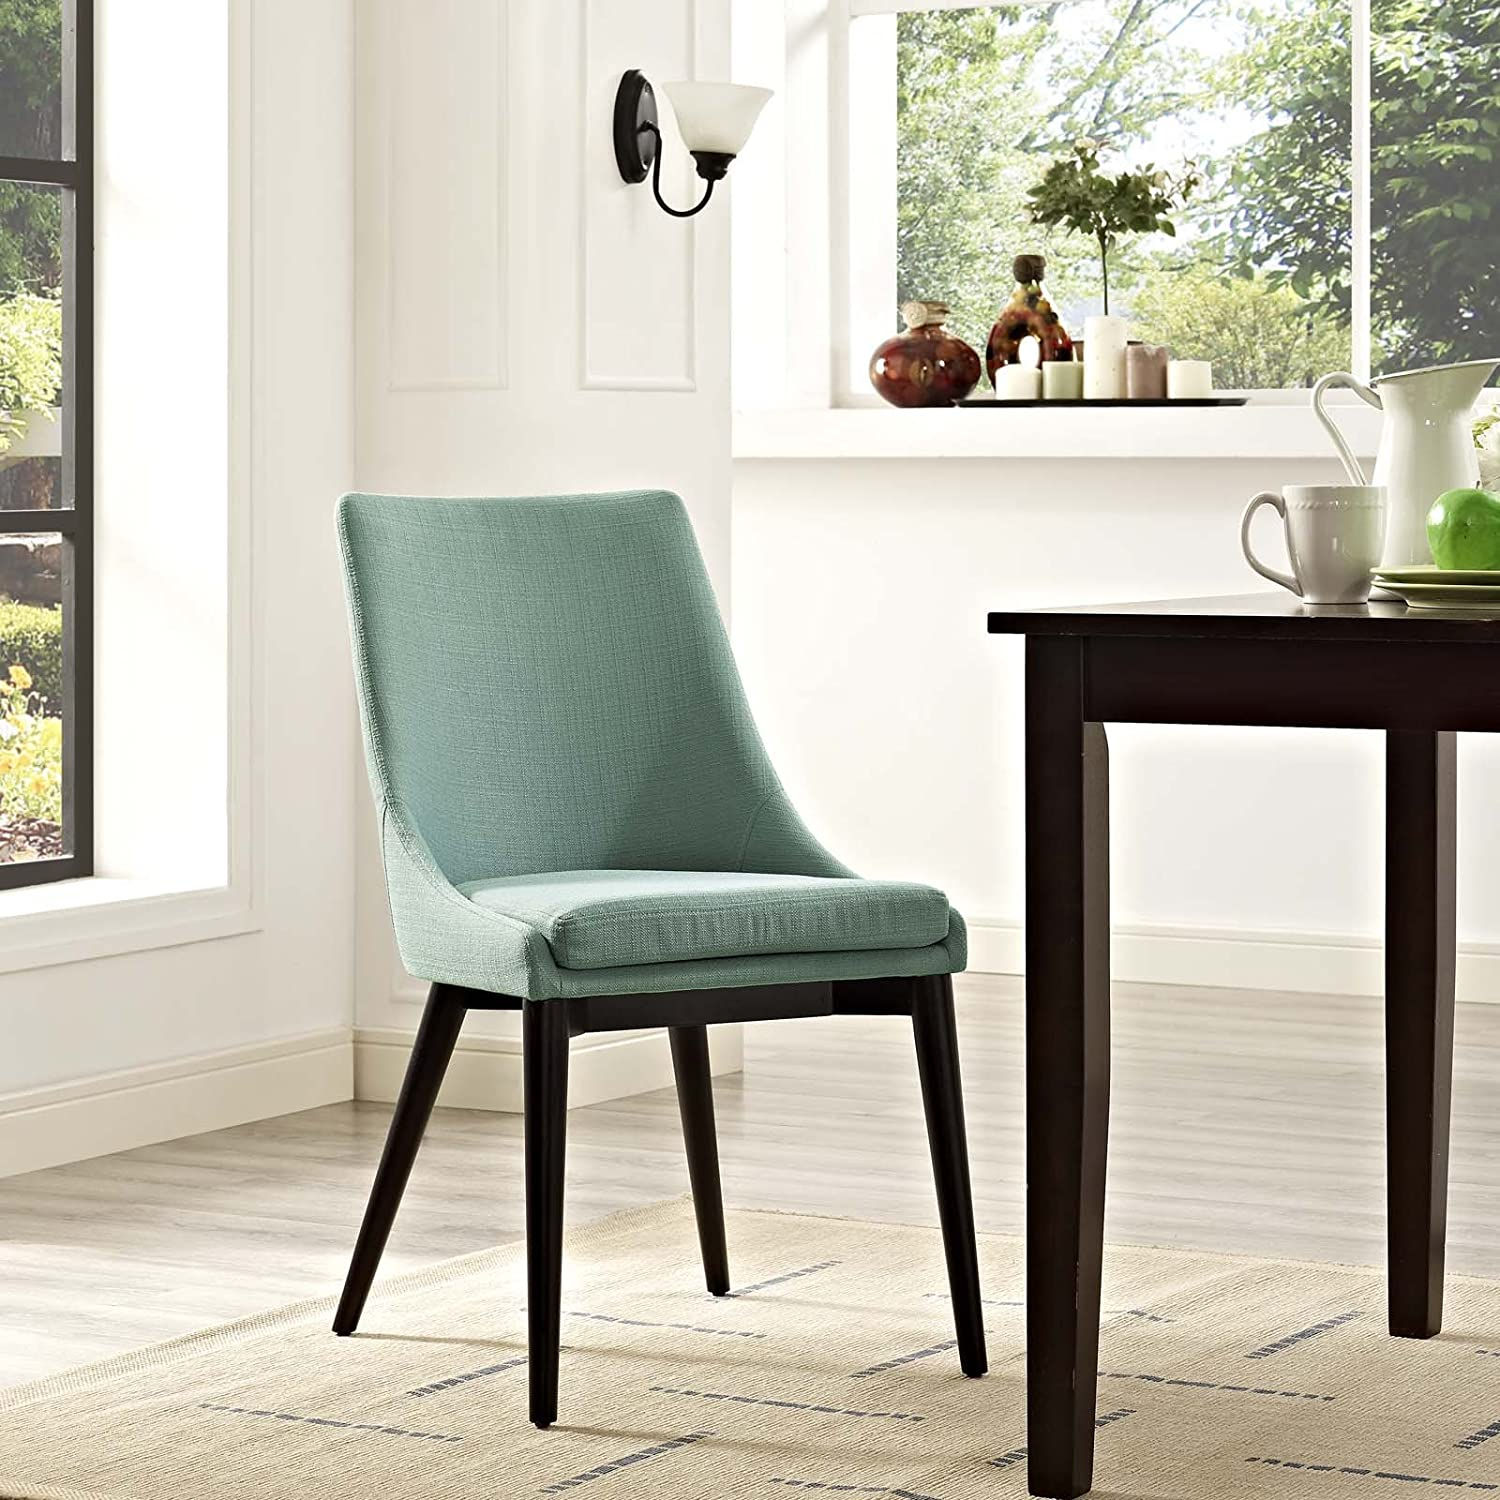 Modway Viscount Mid-Century Modern Upholstered Fabric Kitchen and Dining Room Chair in Laguna